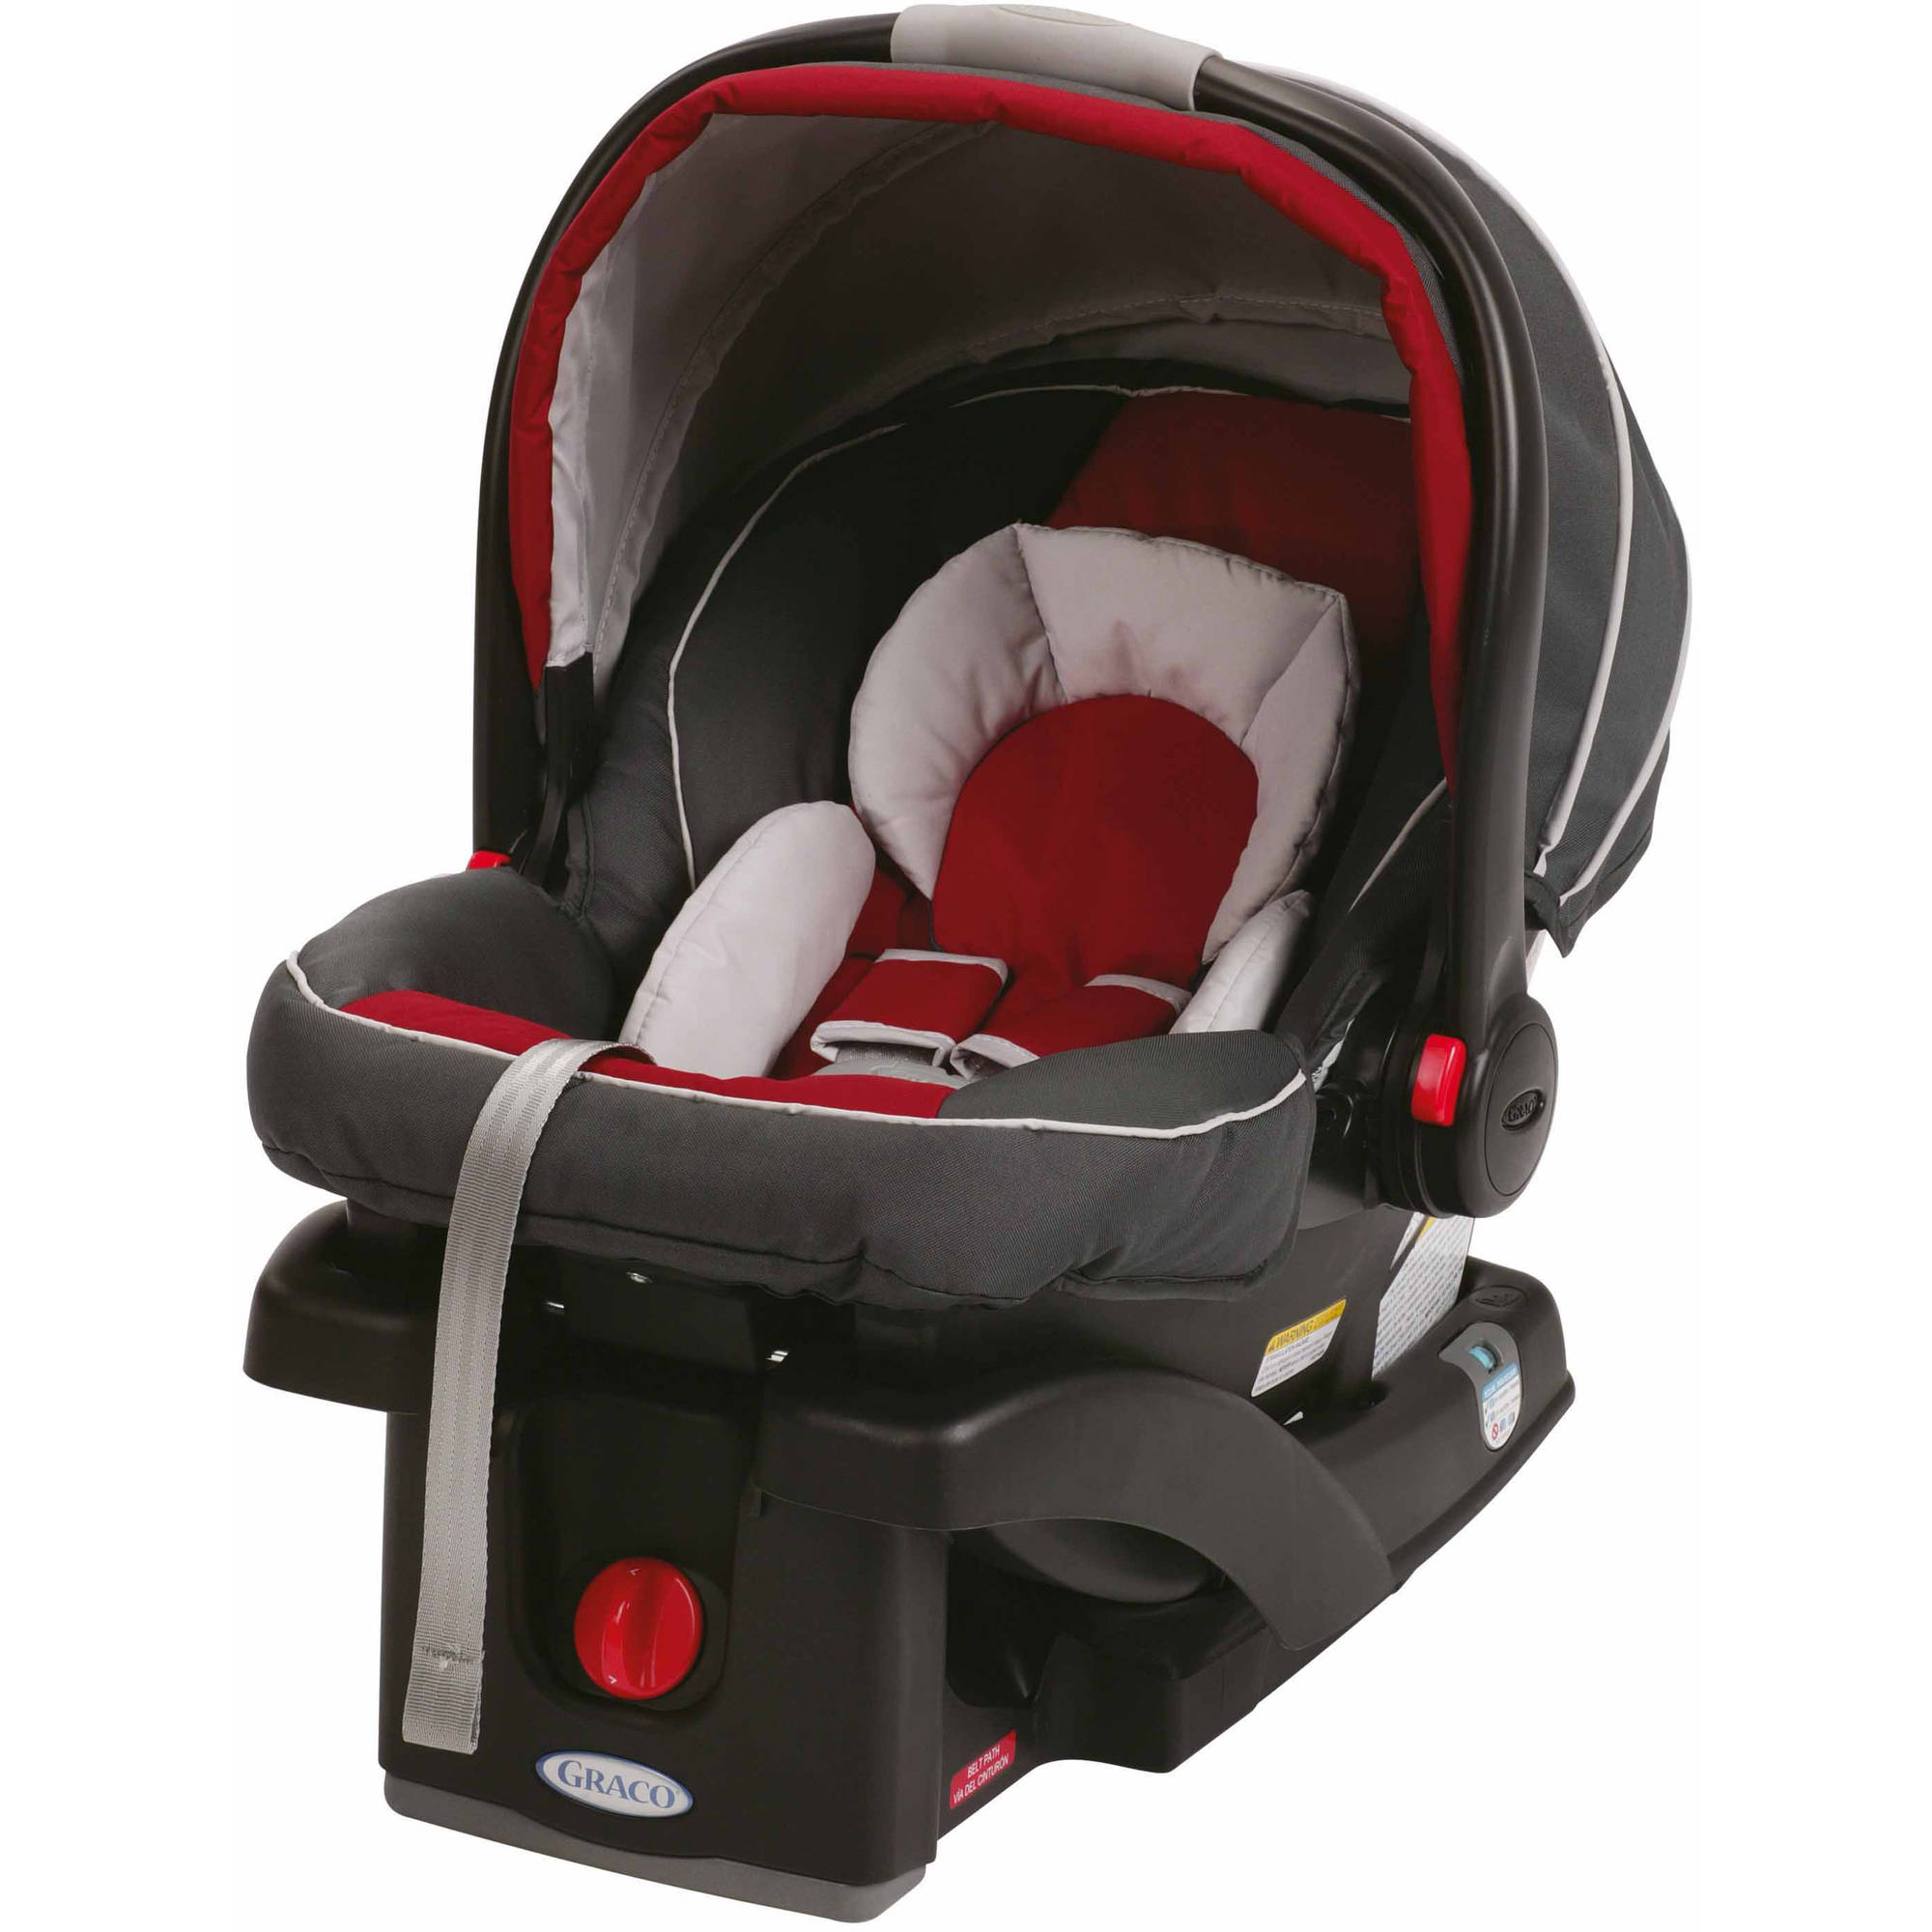 Graco SnugRide Click Connect 35 Infant Car Seat, Chili Red